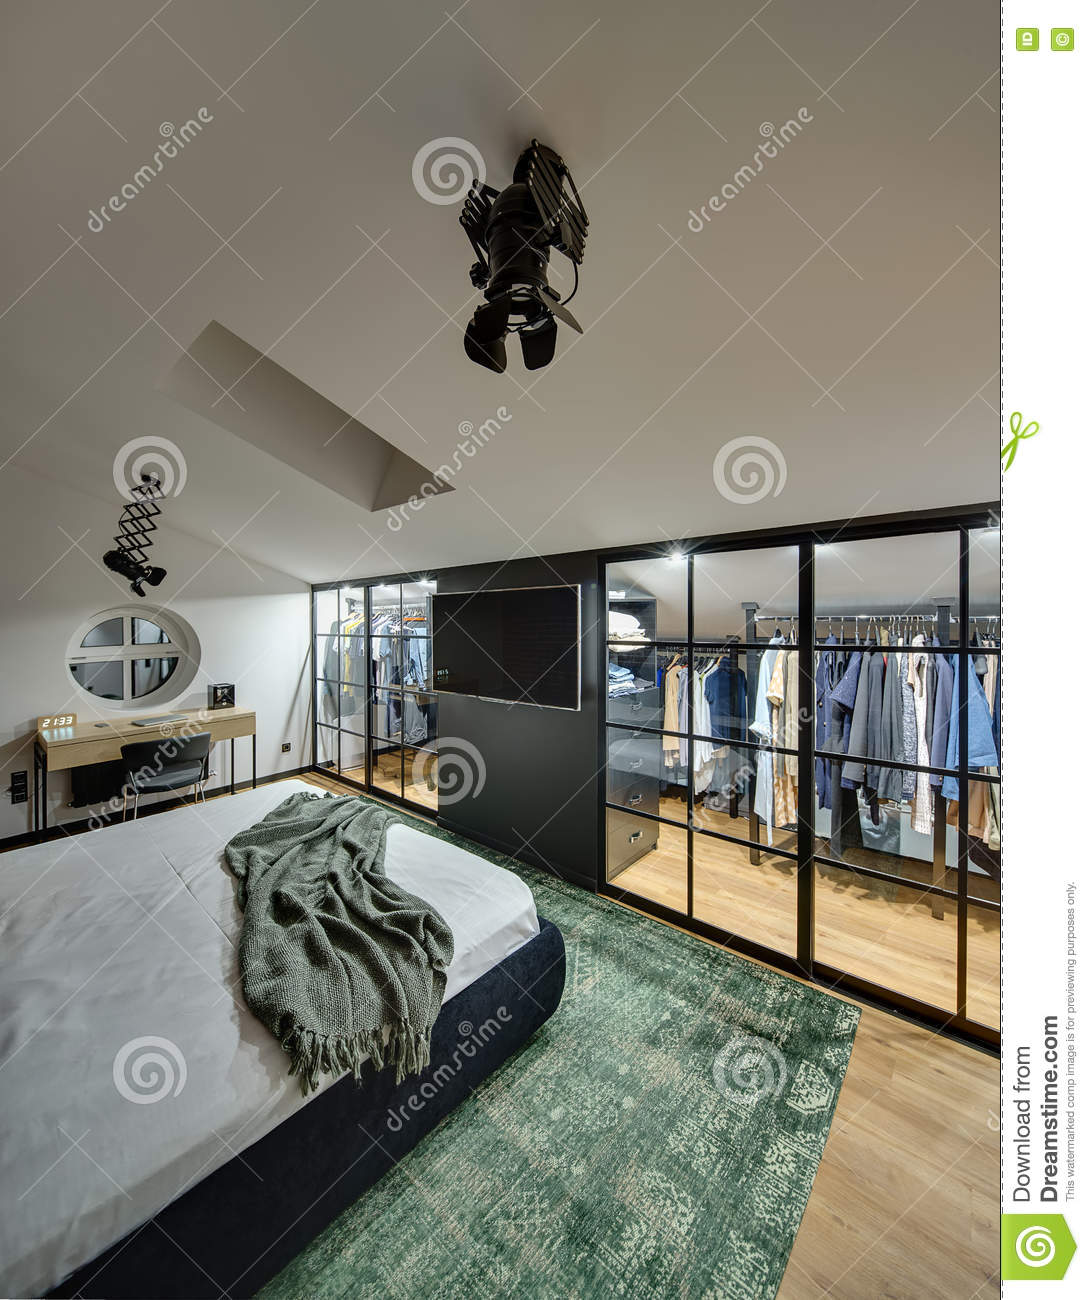 Green Rug White Walls: Glowing Bedroom In Modern Style Stock Image